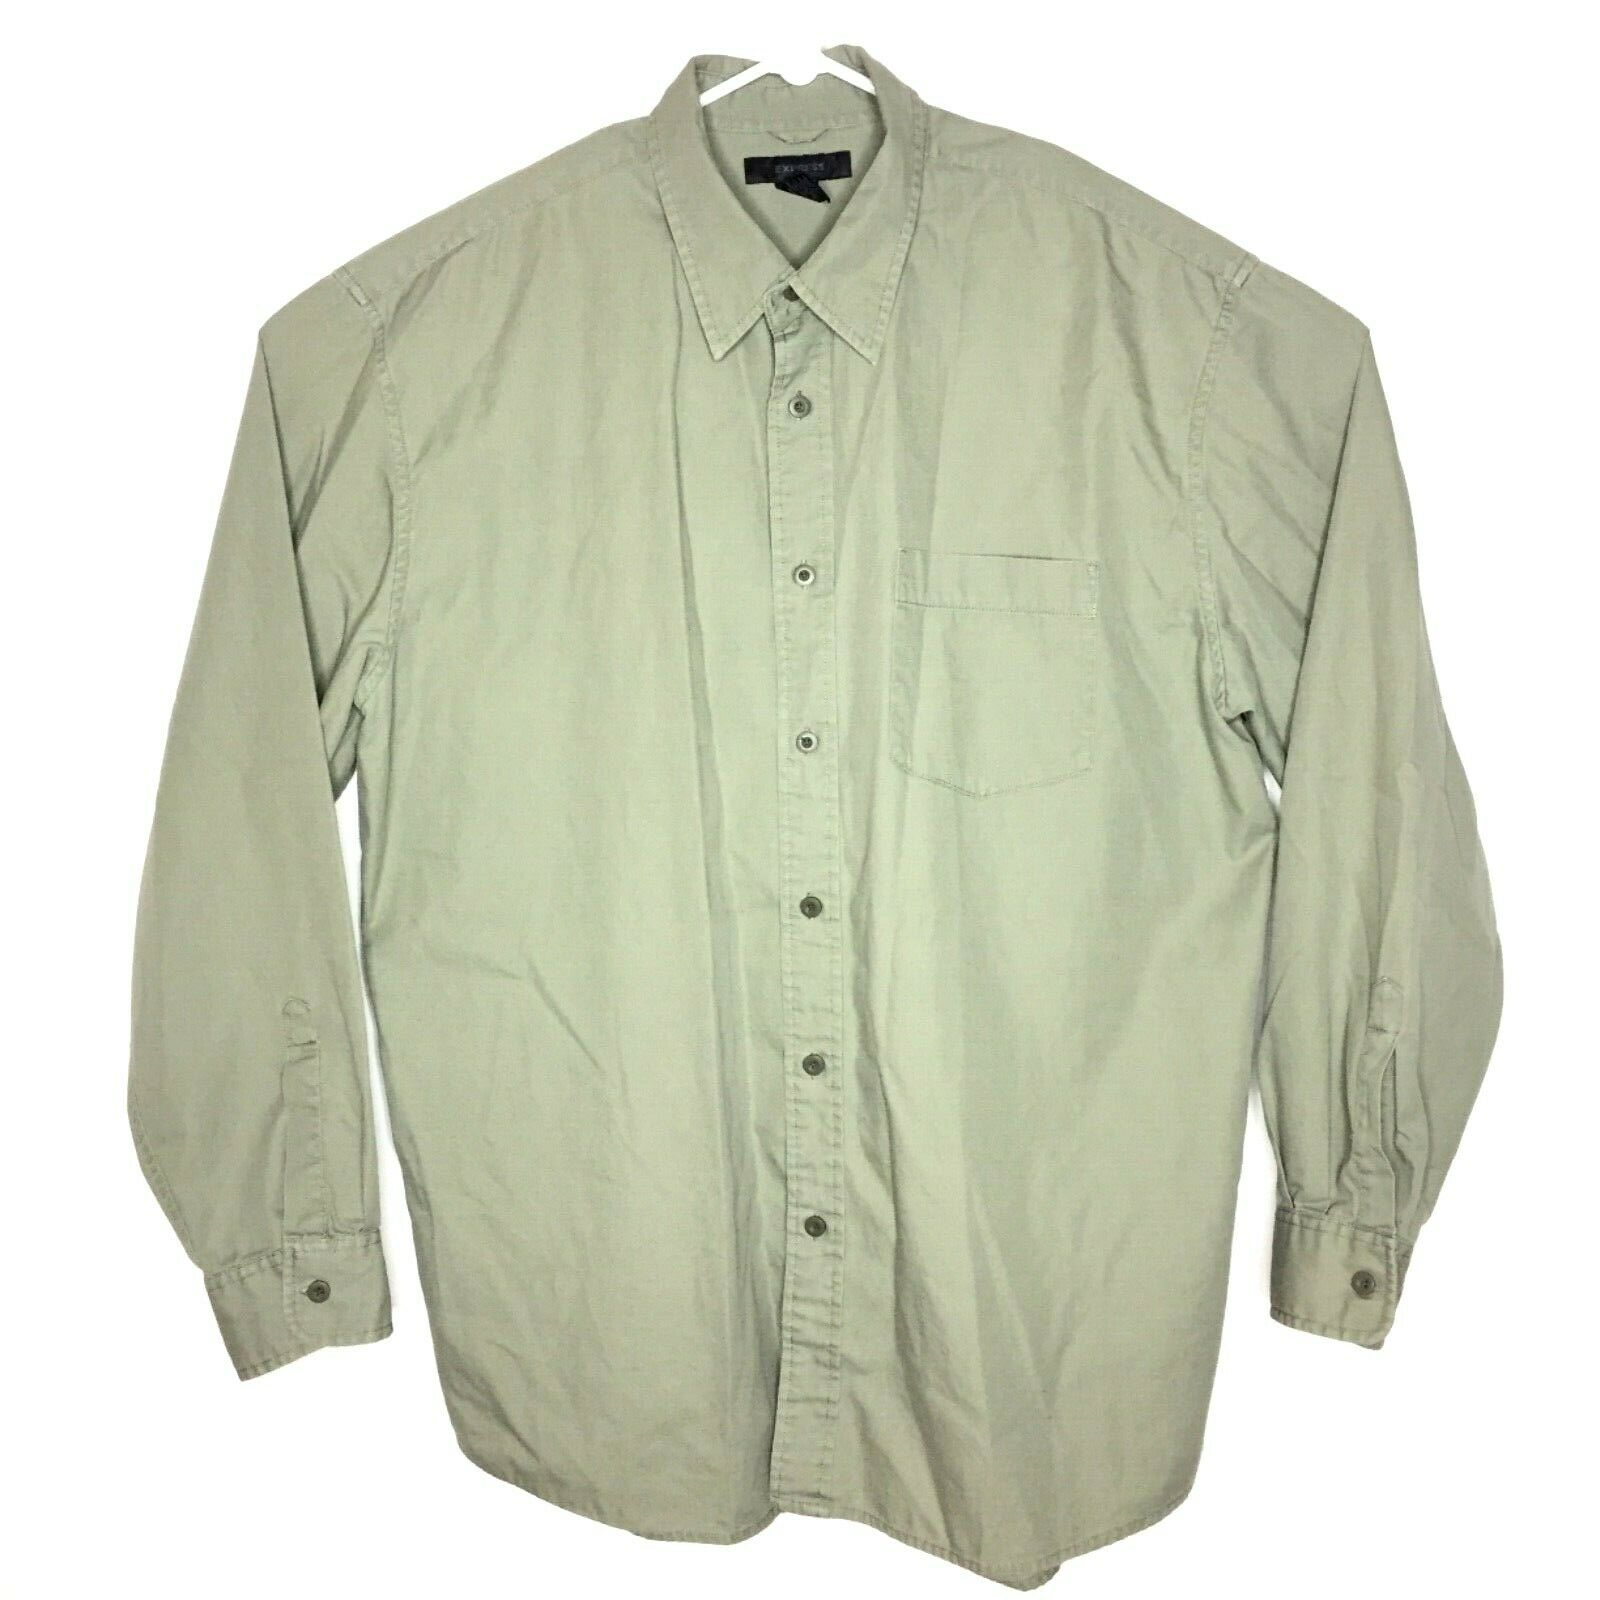 Express Mens Khaki Green Sz XL Long Sleeve Button Up Shirt 100% Cotton